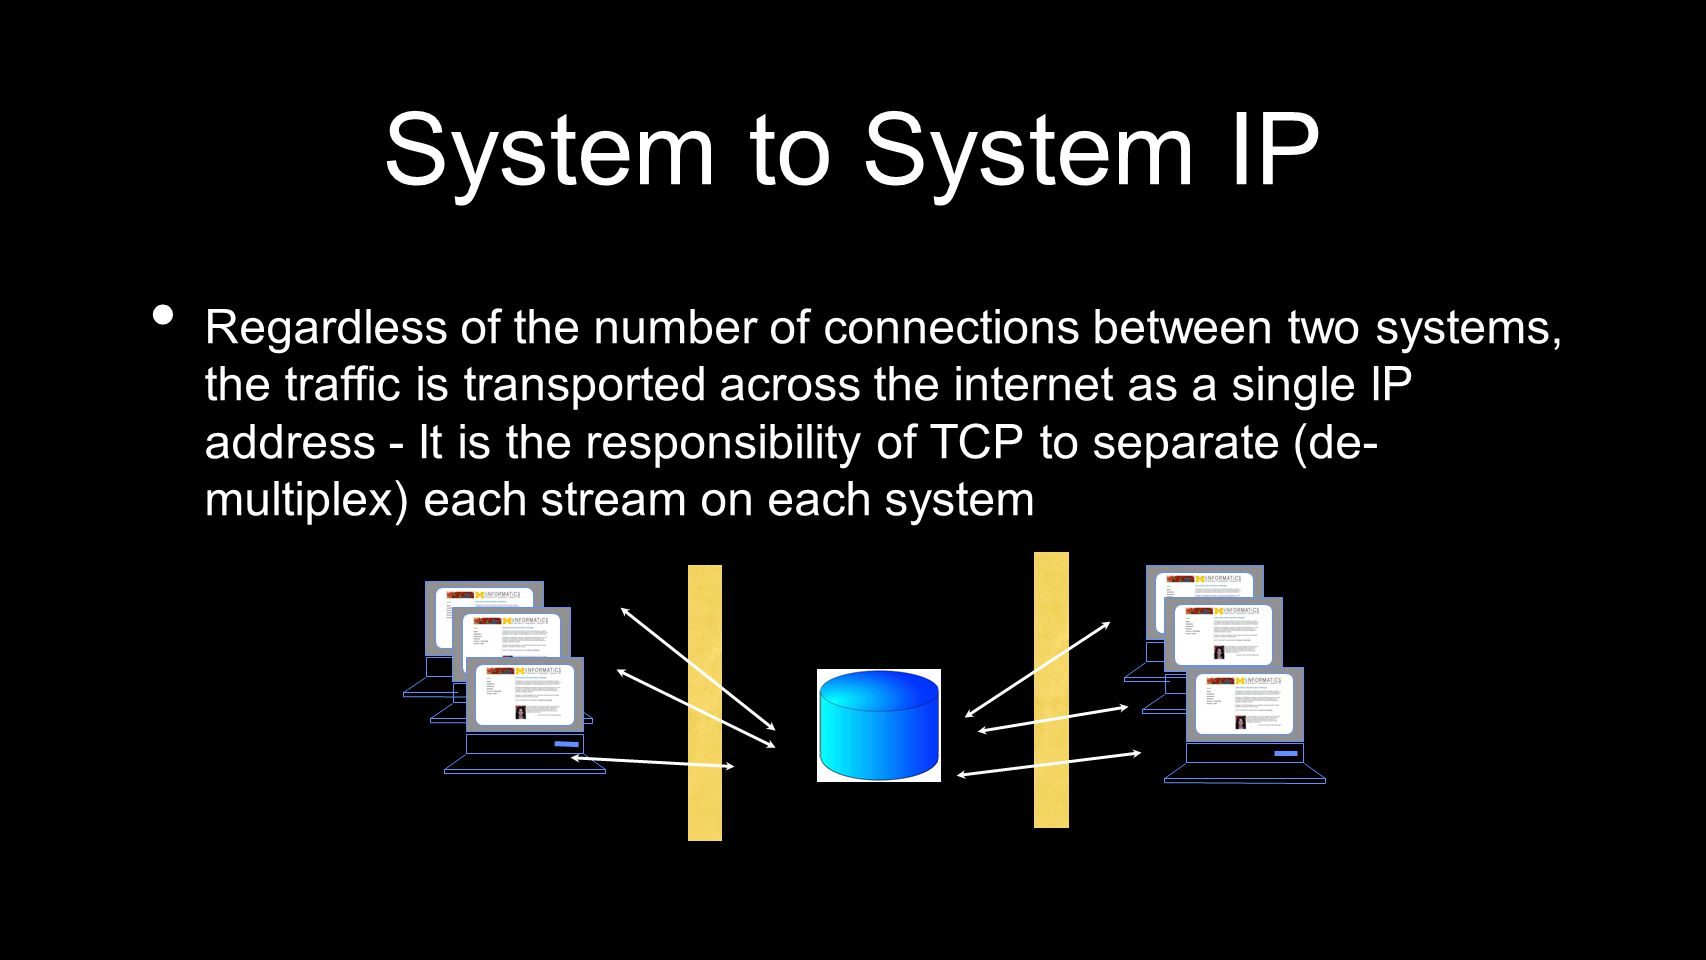 System to System IP